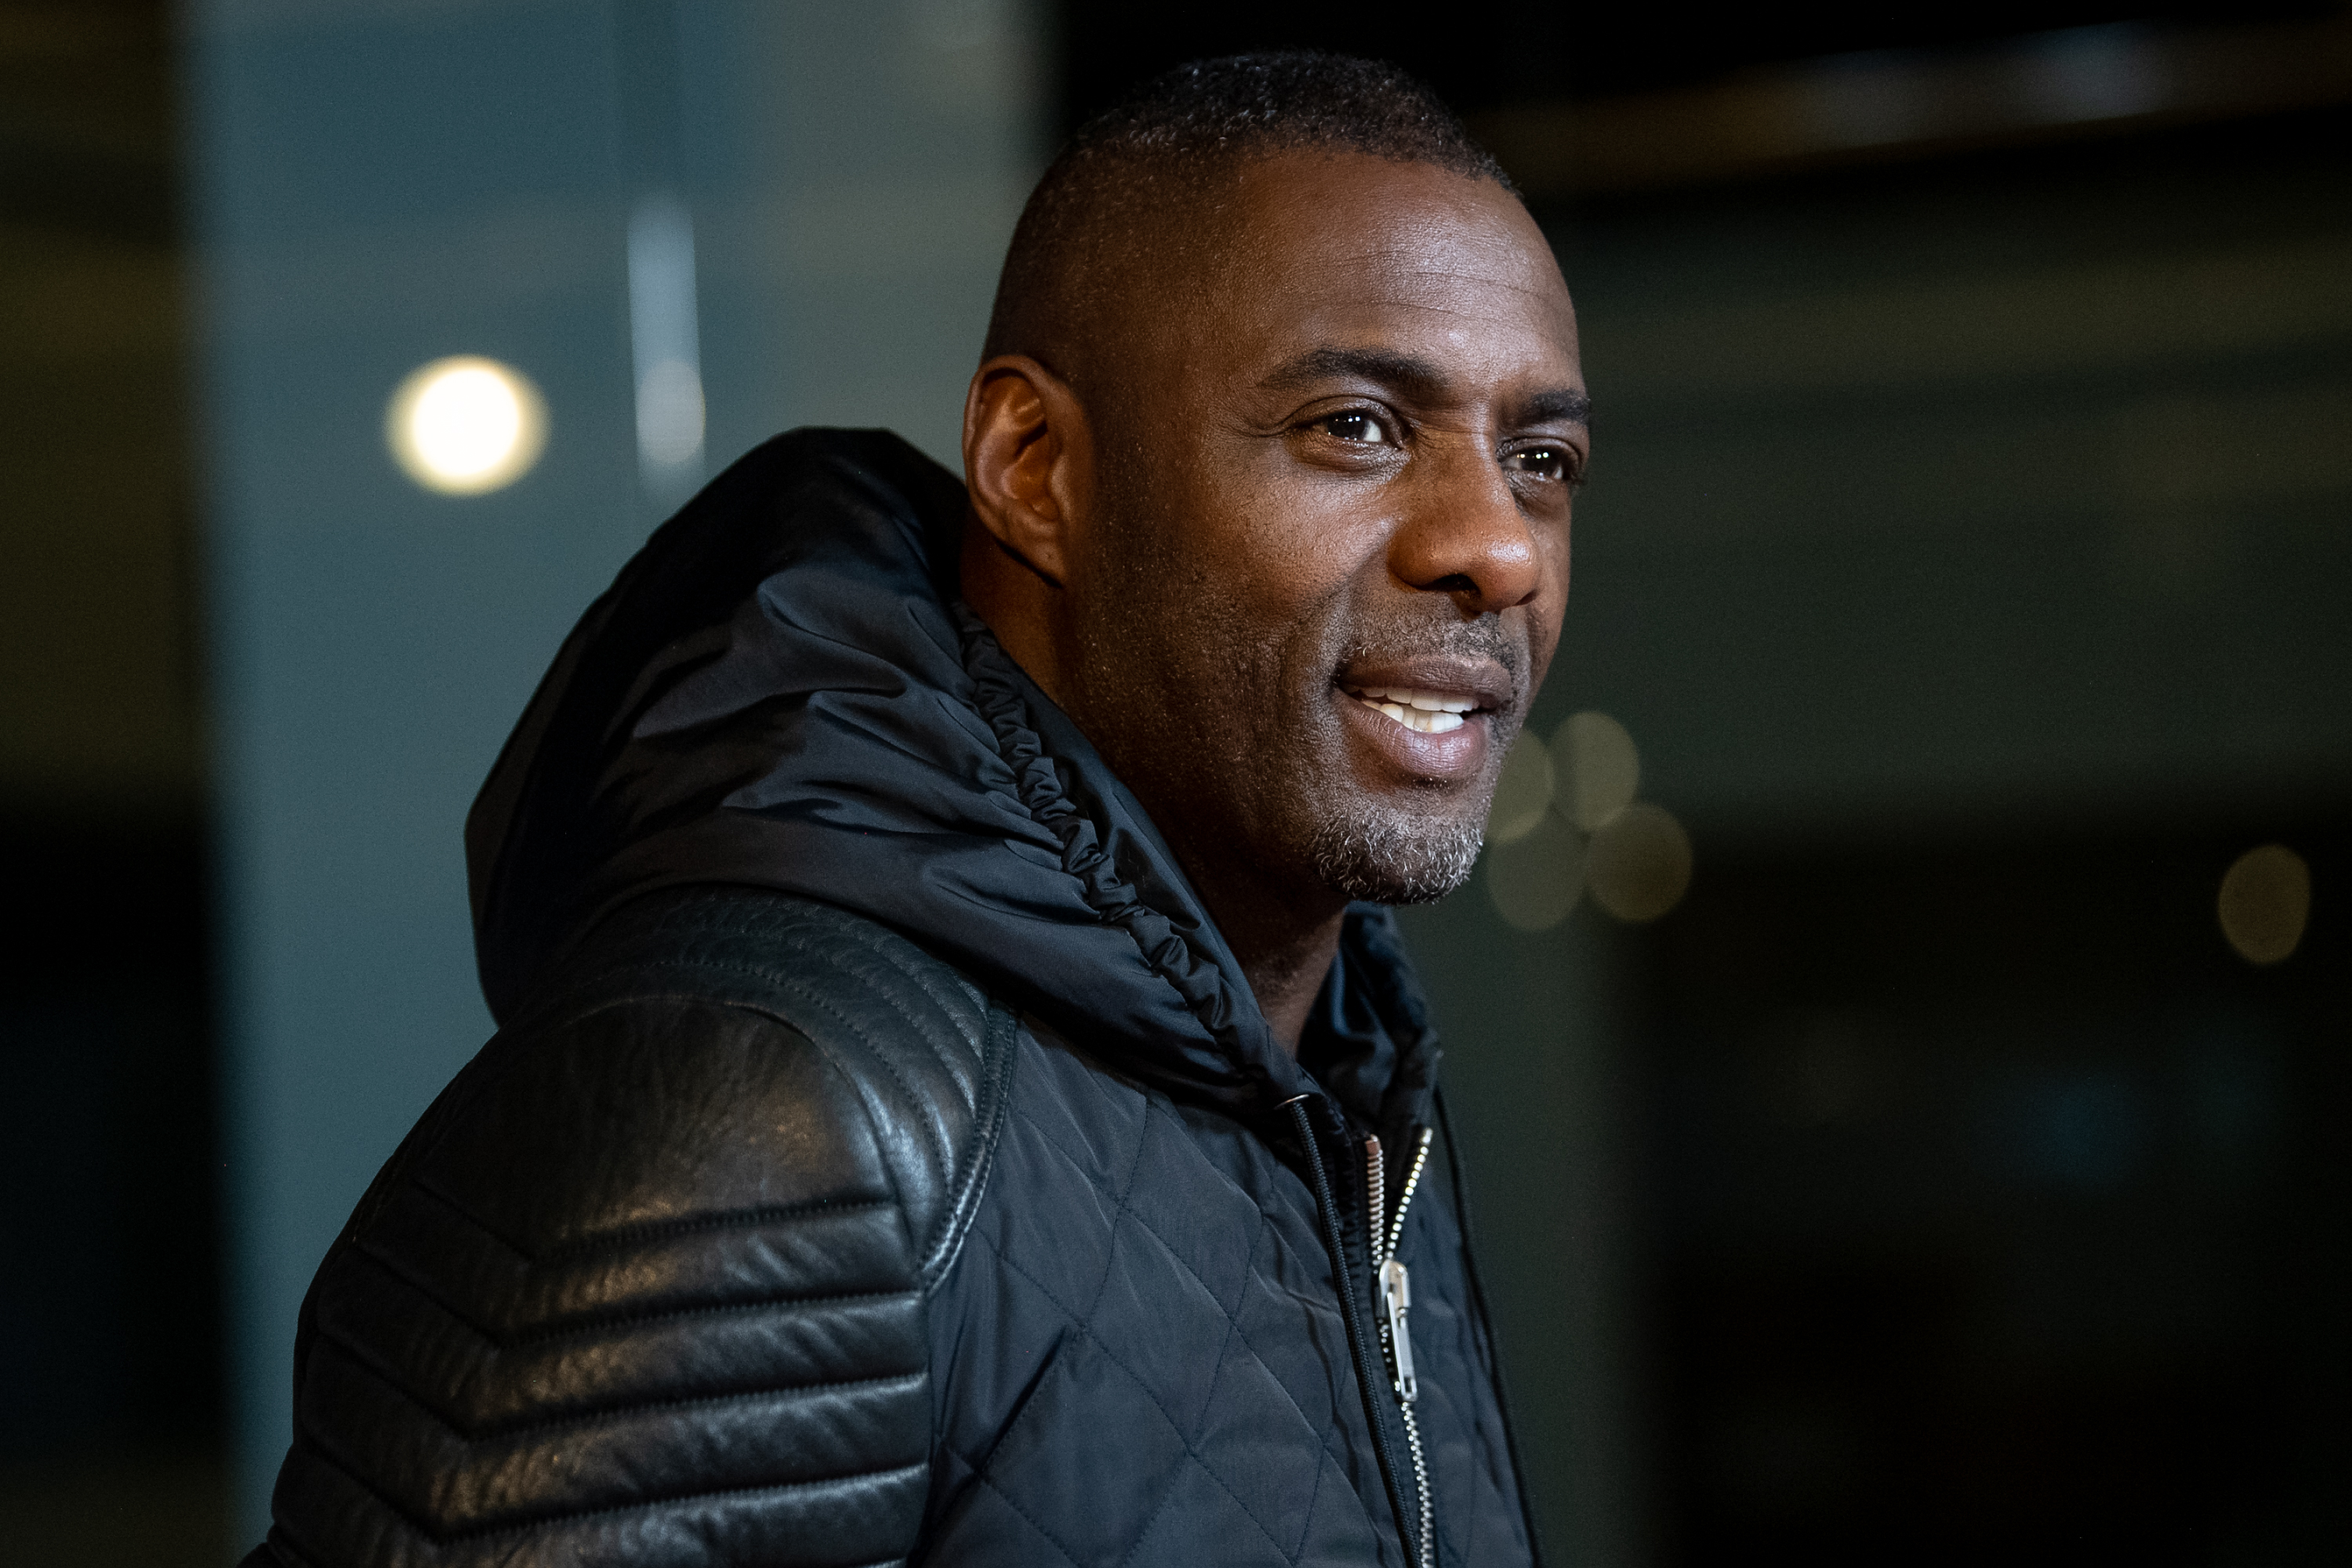 Idris Elba reveals he faked being American to land Stringer Bell role on The Wire